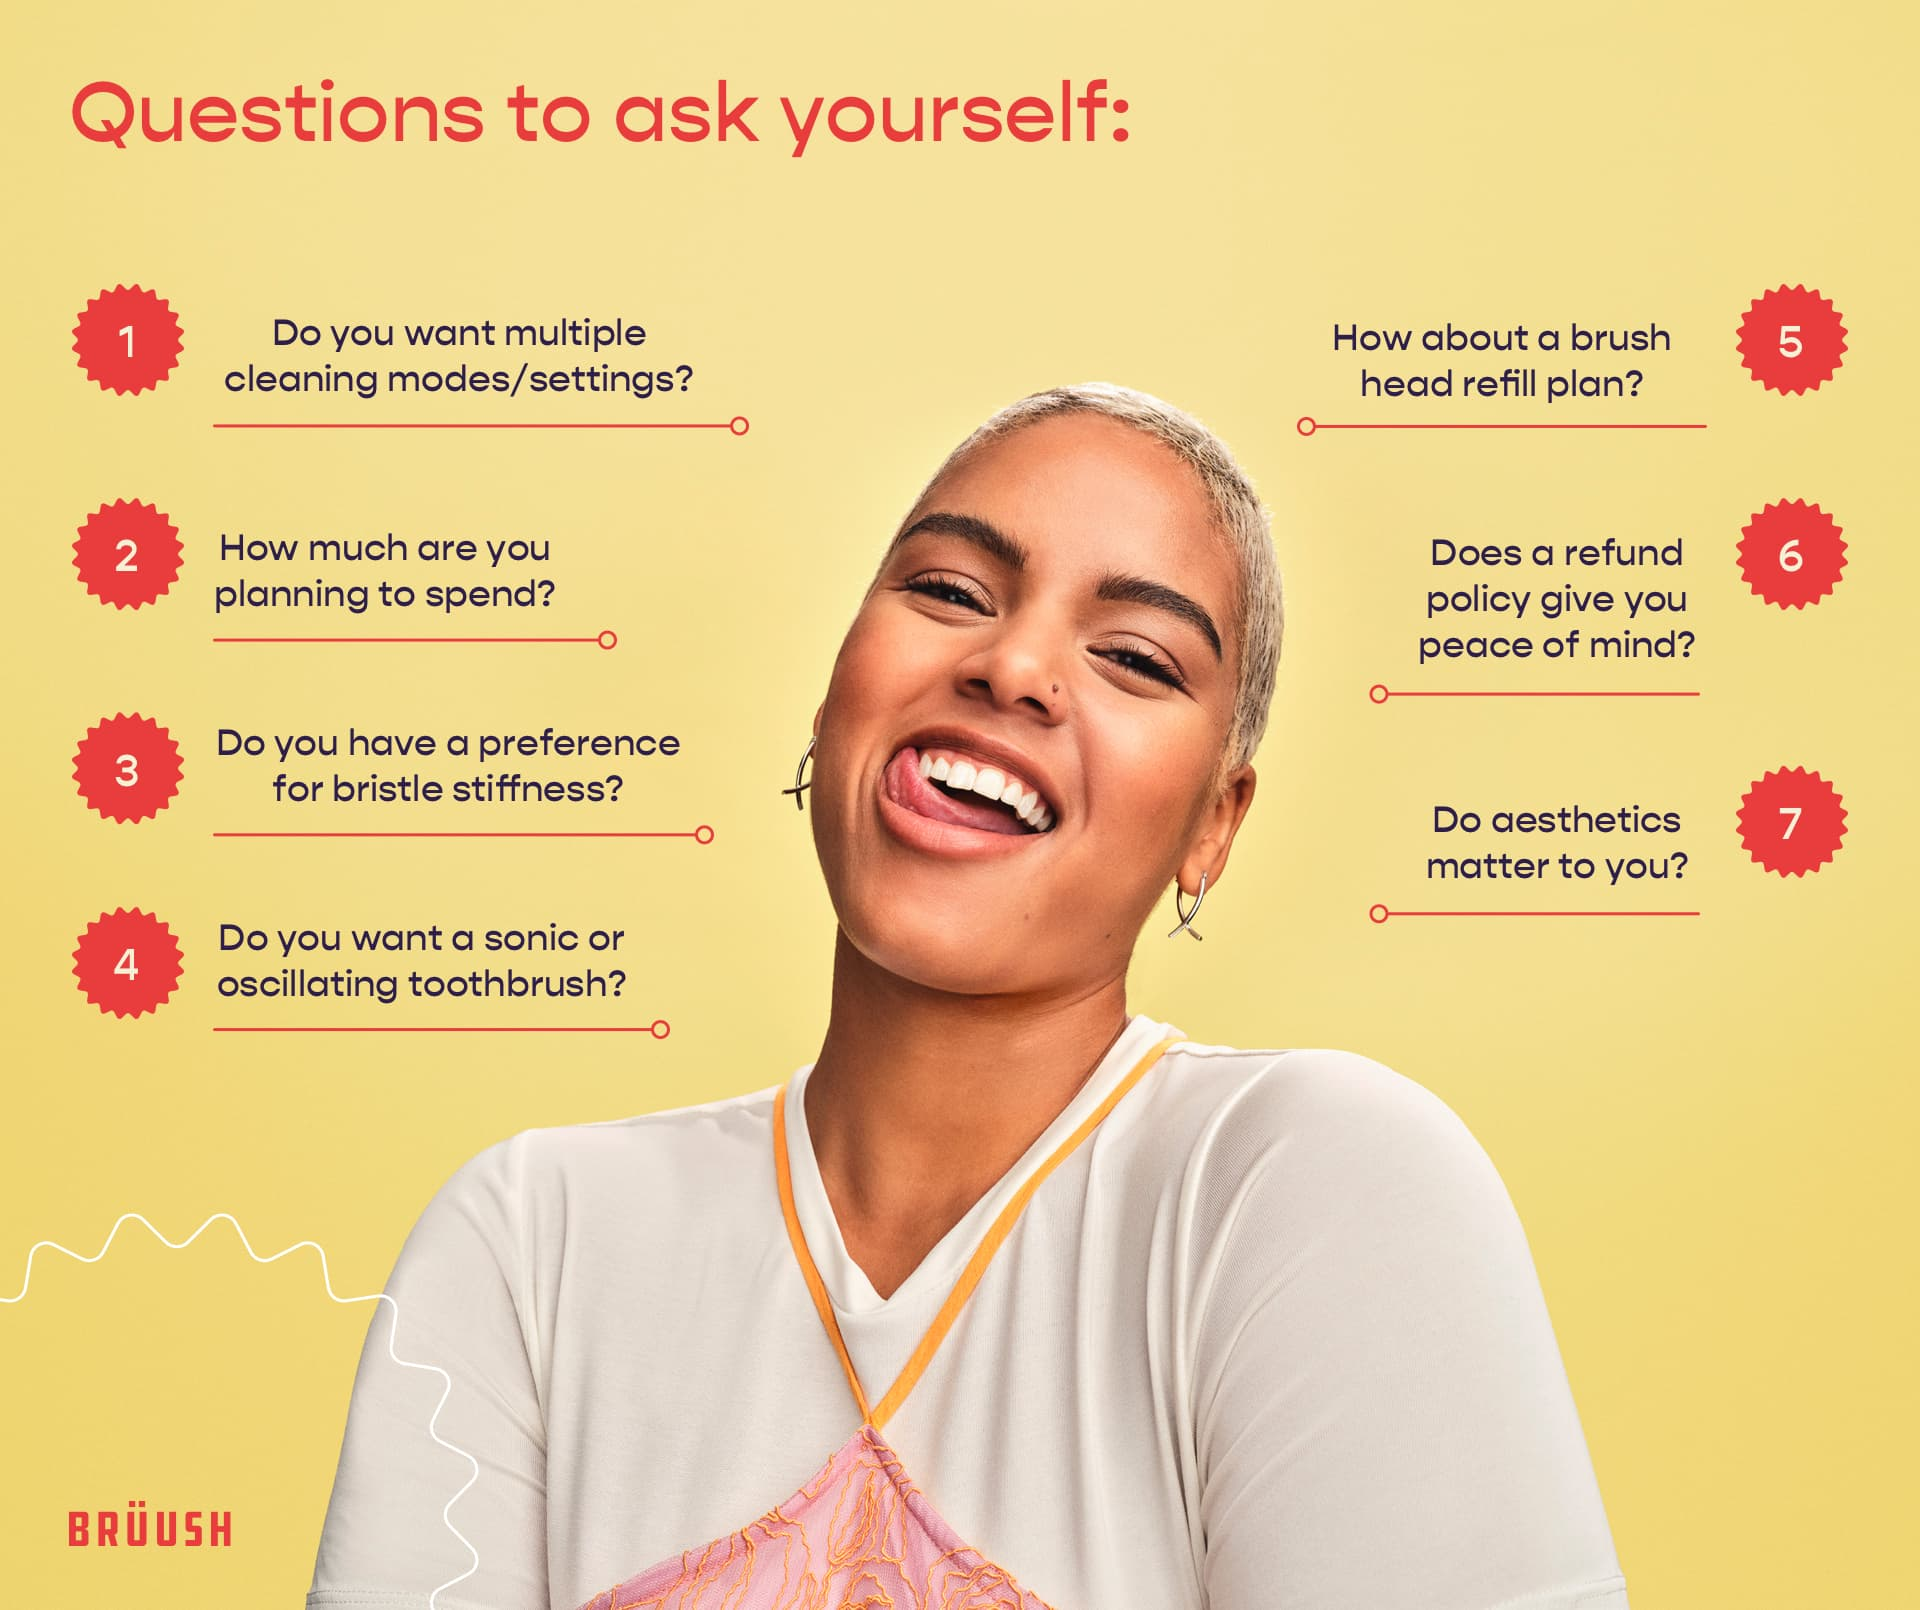 questions to ask yourself regarding electric toothbrushes